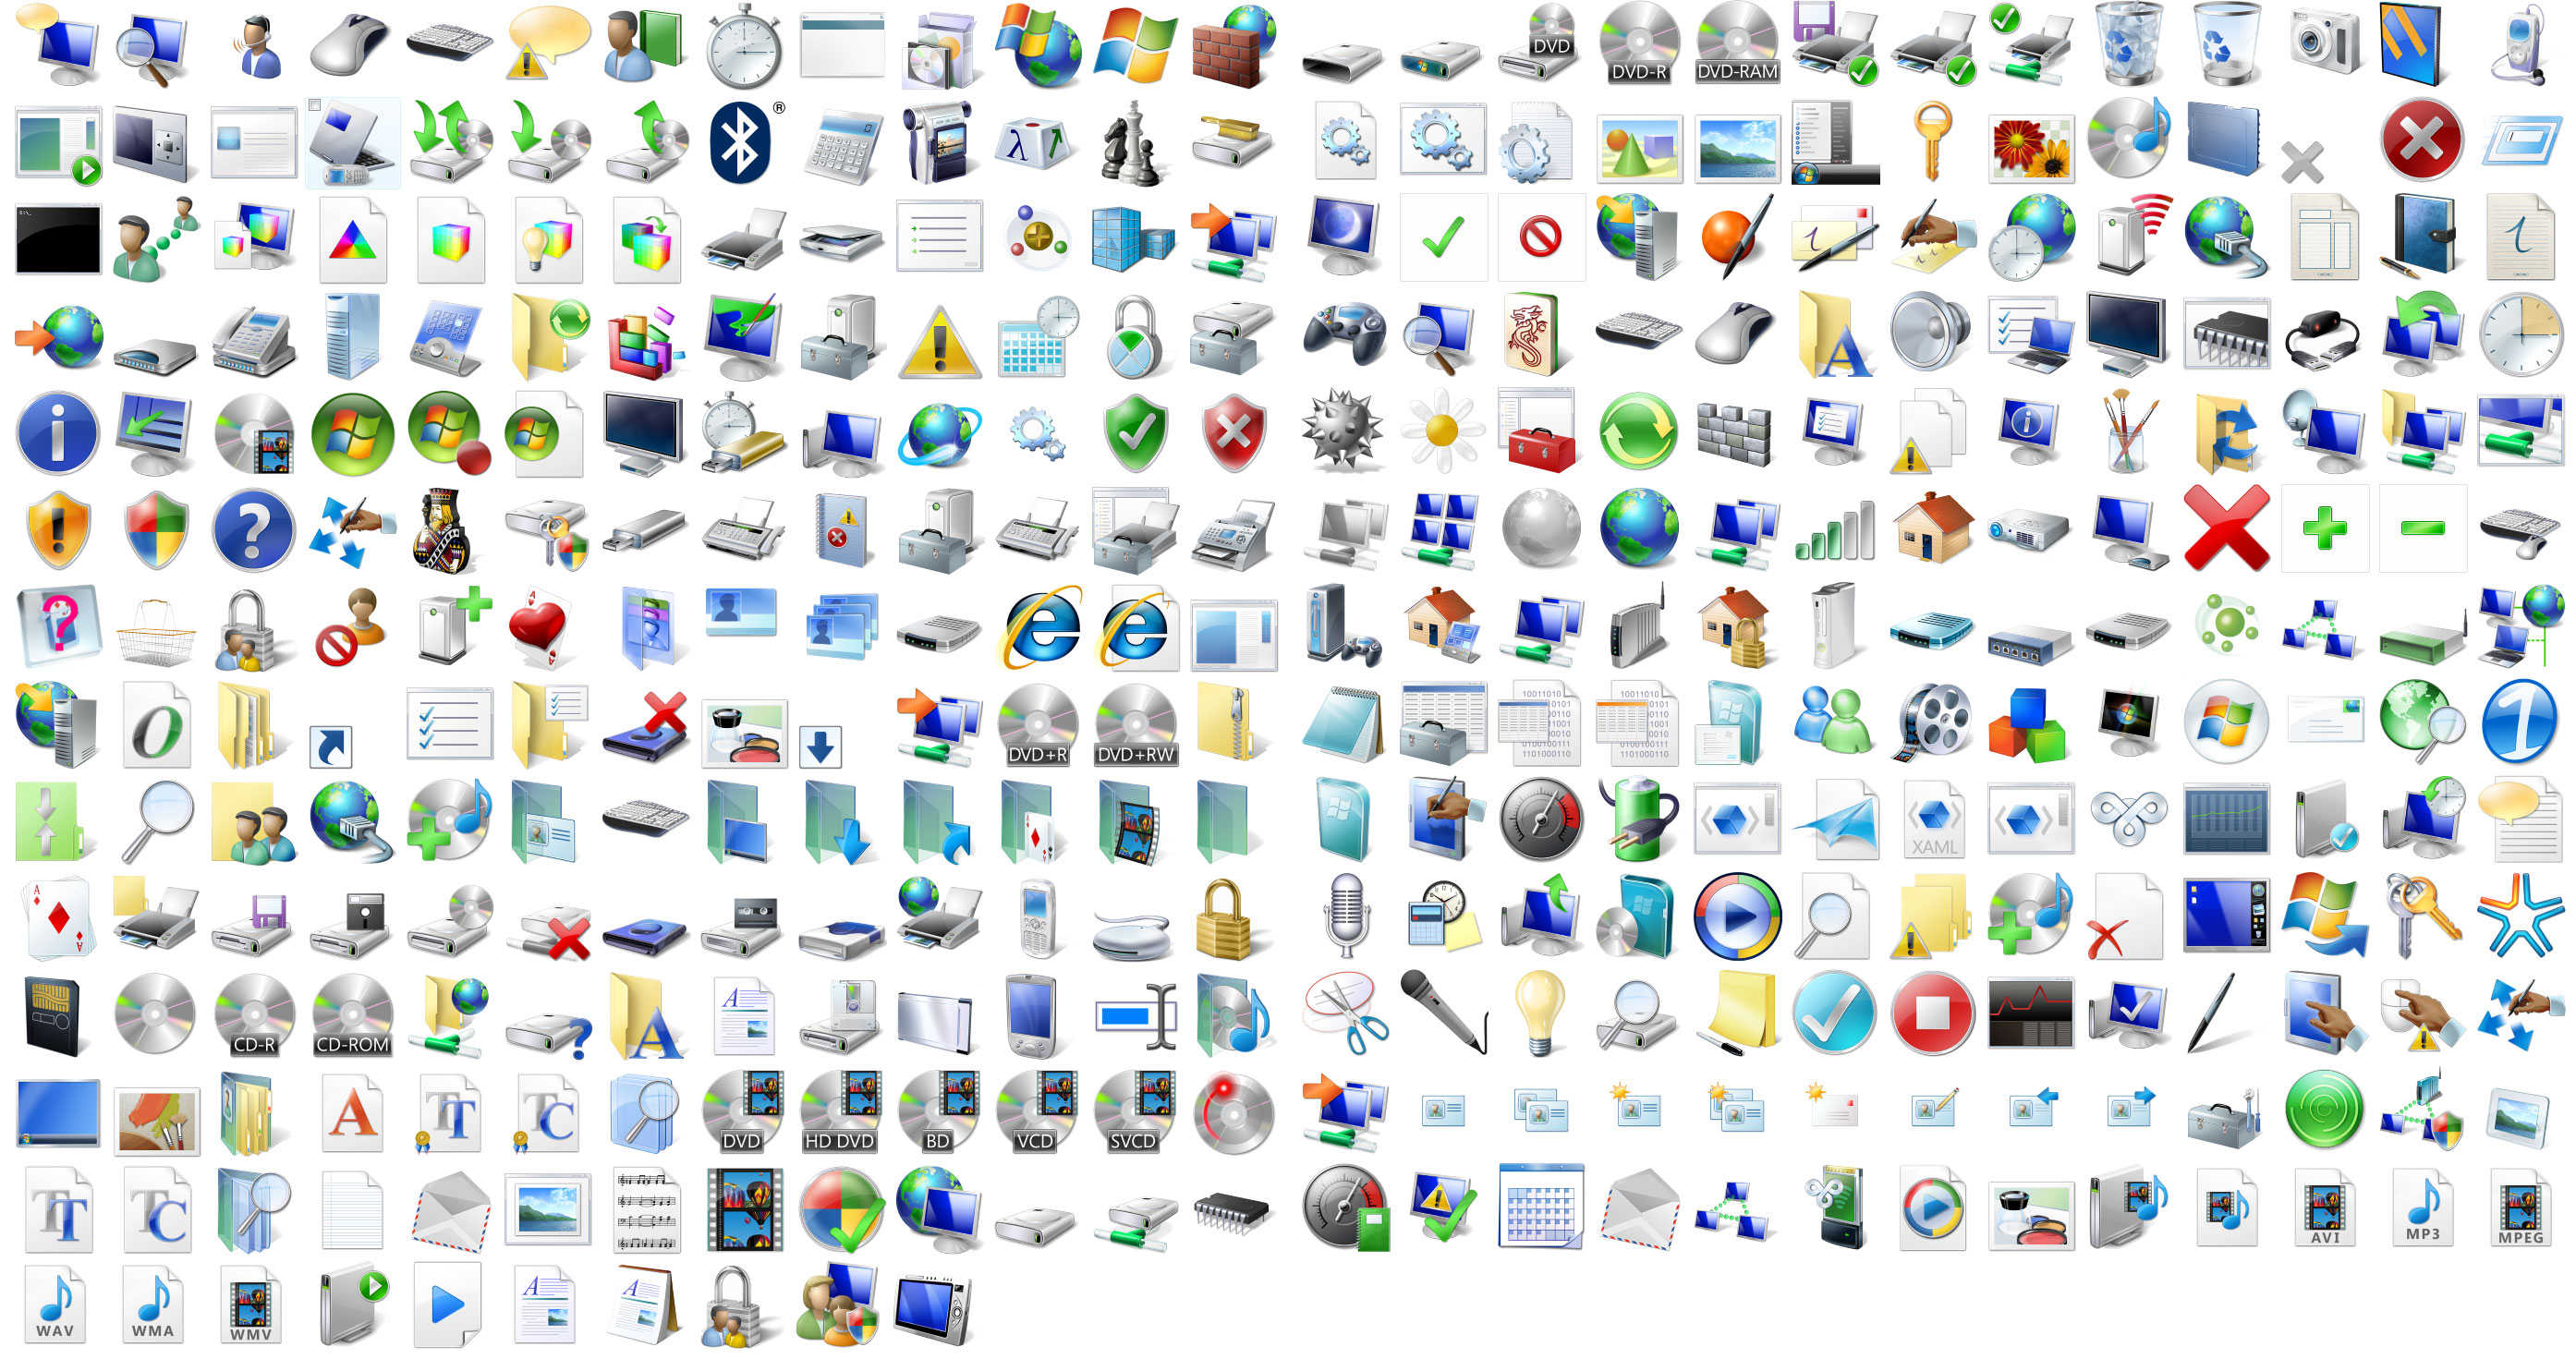 17 Word Icon Changed Windows 7 Images